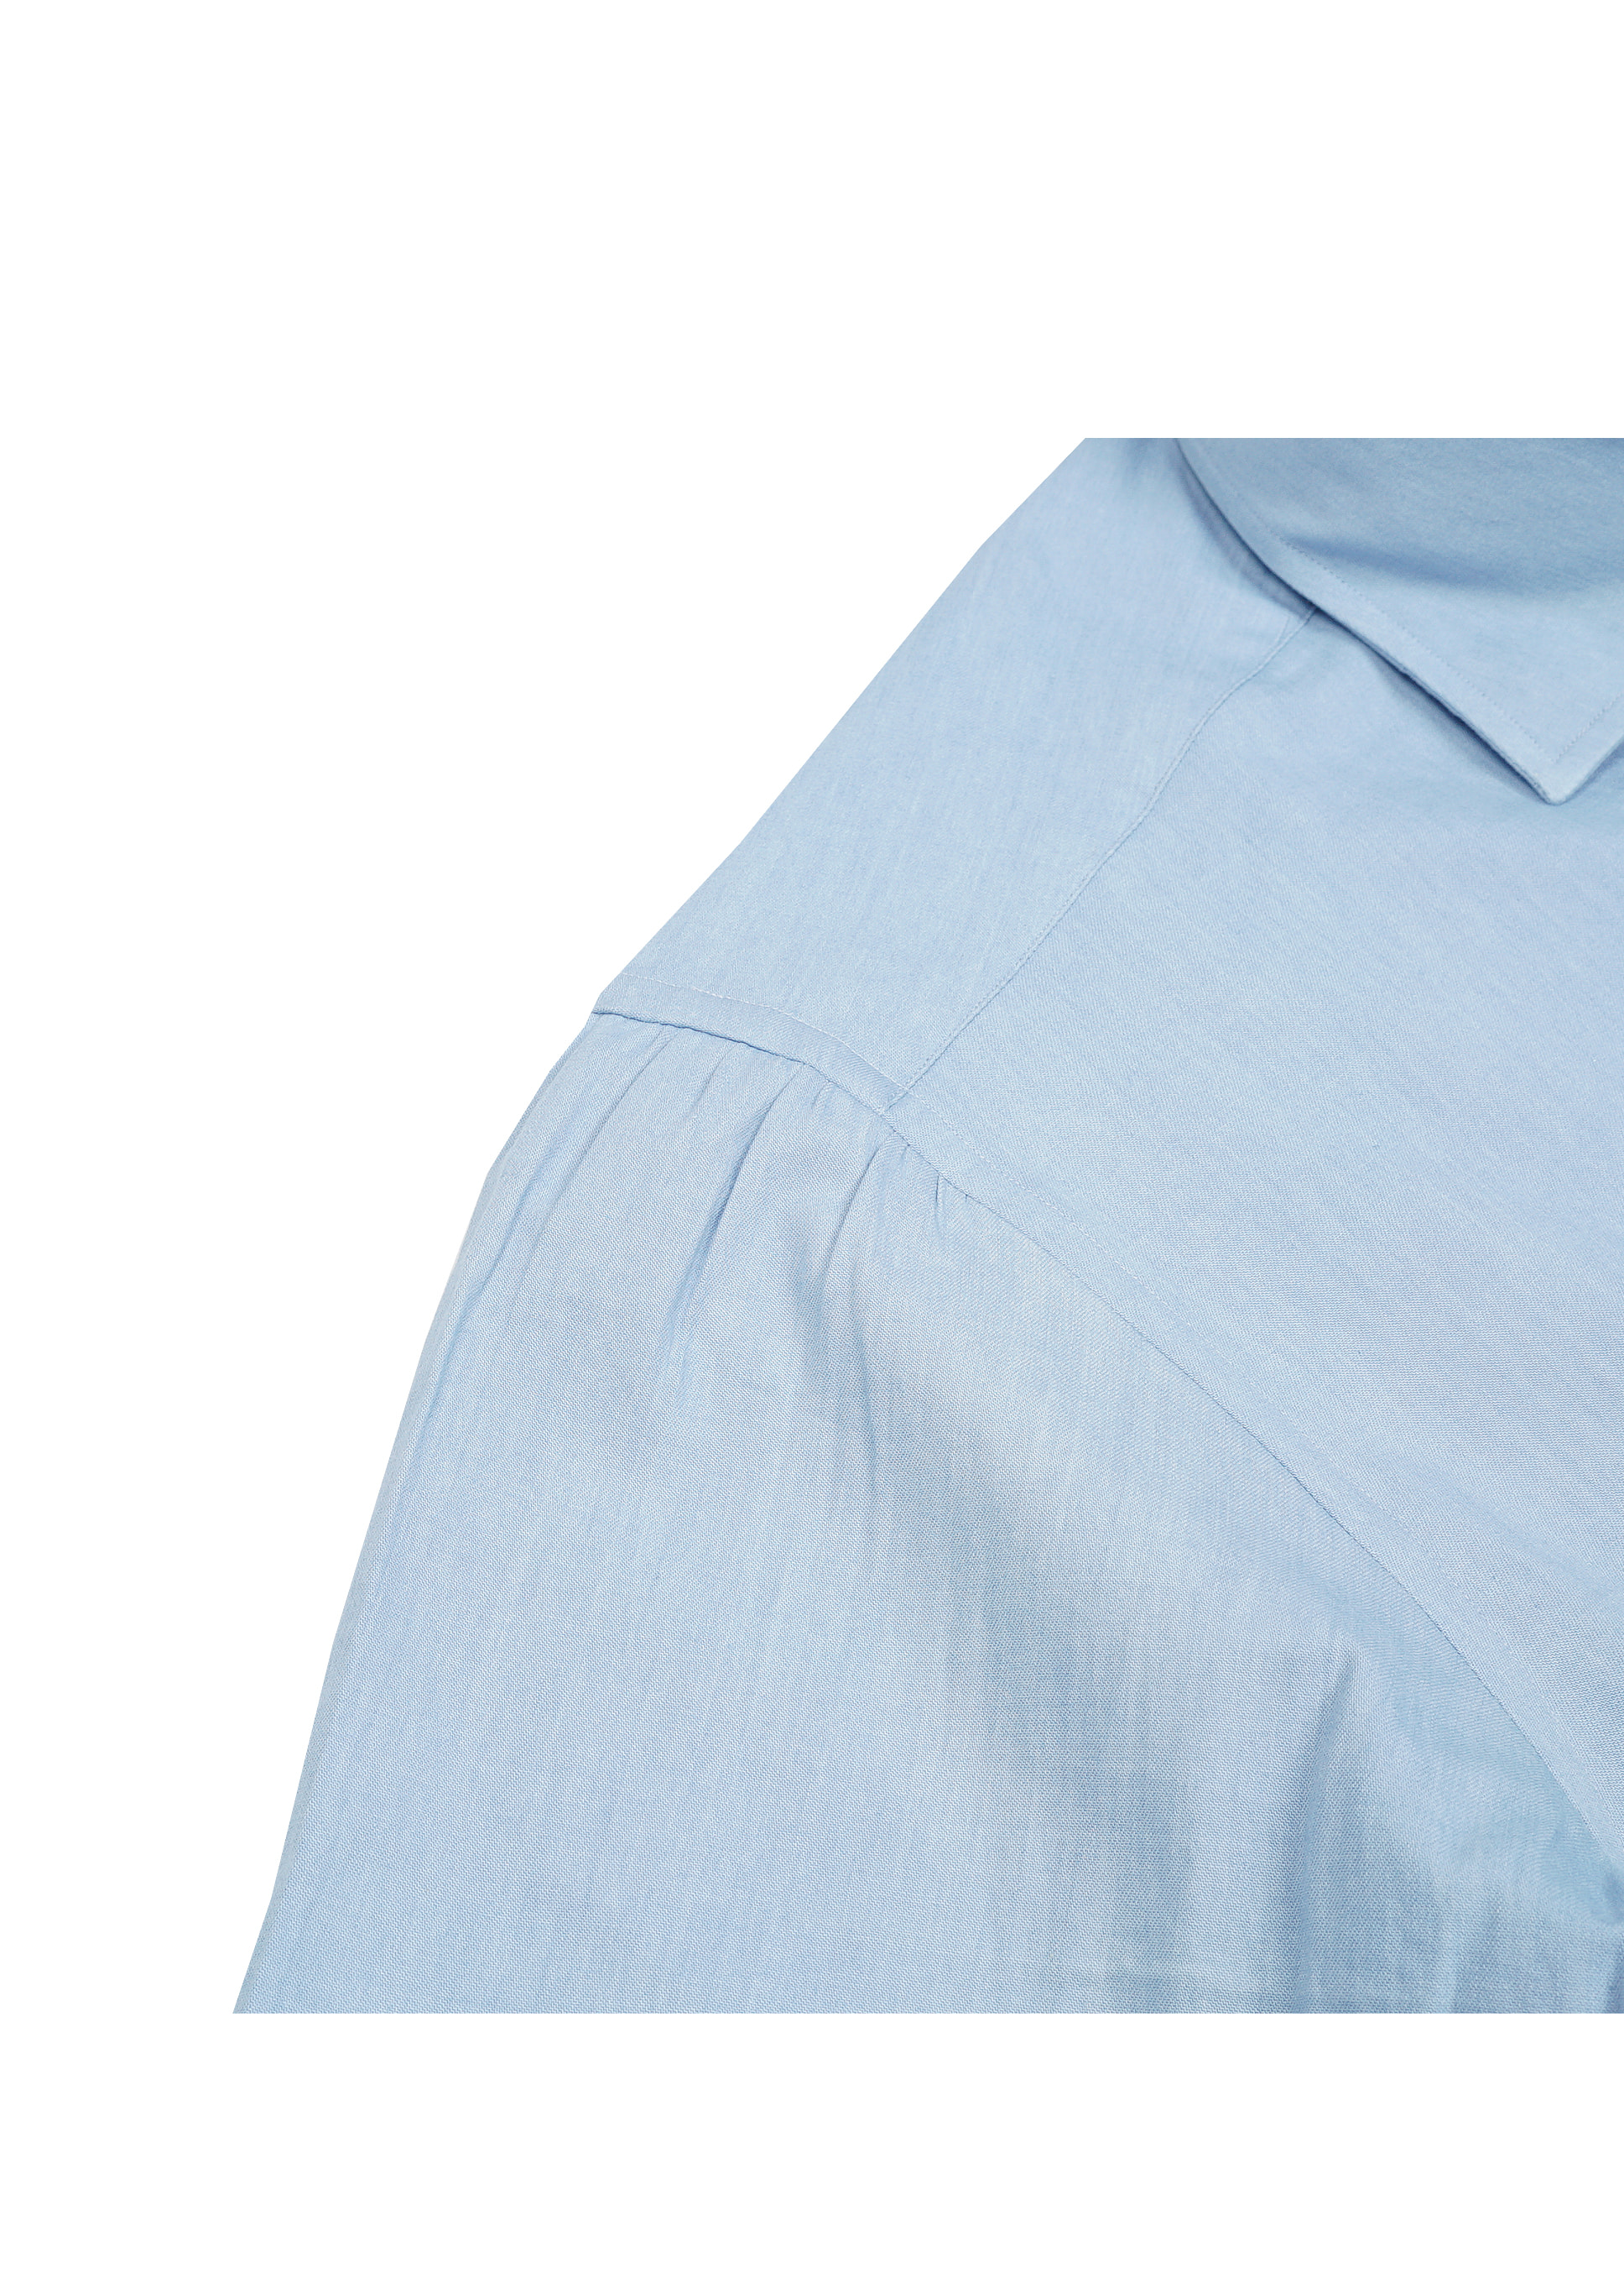 SHIRTSCHAMBRAY LIGHT BLUE + SHIRRING